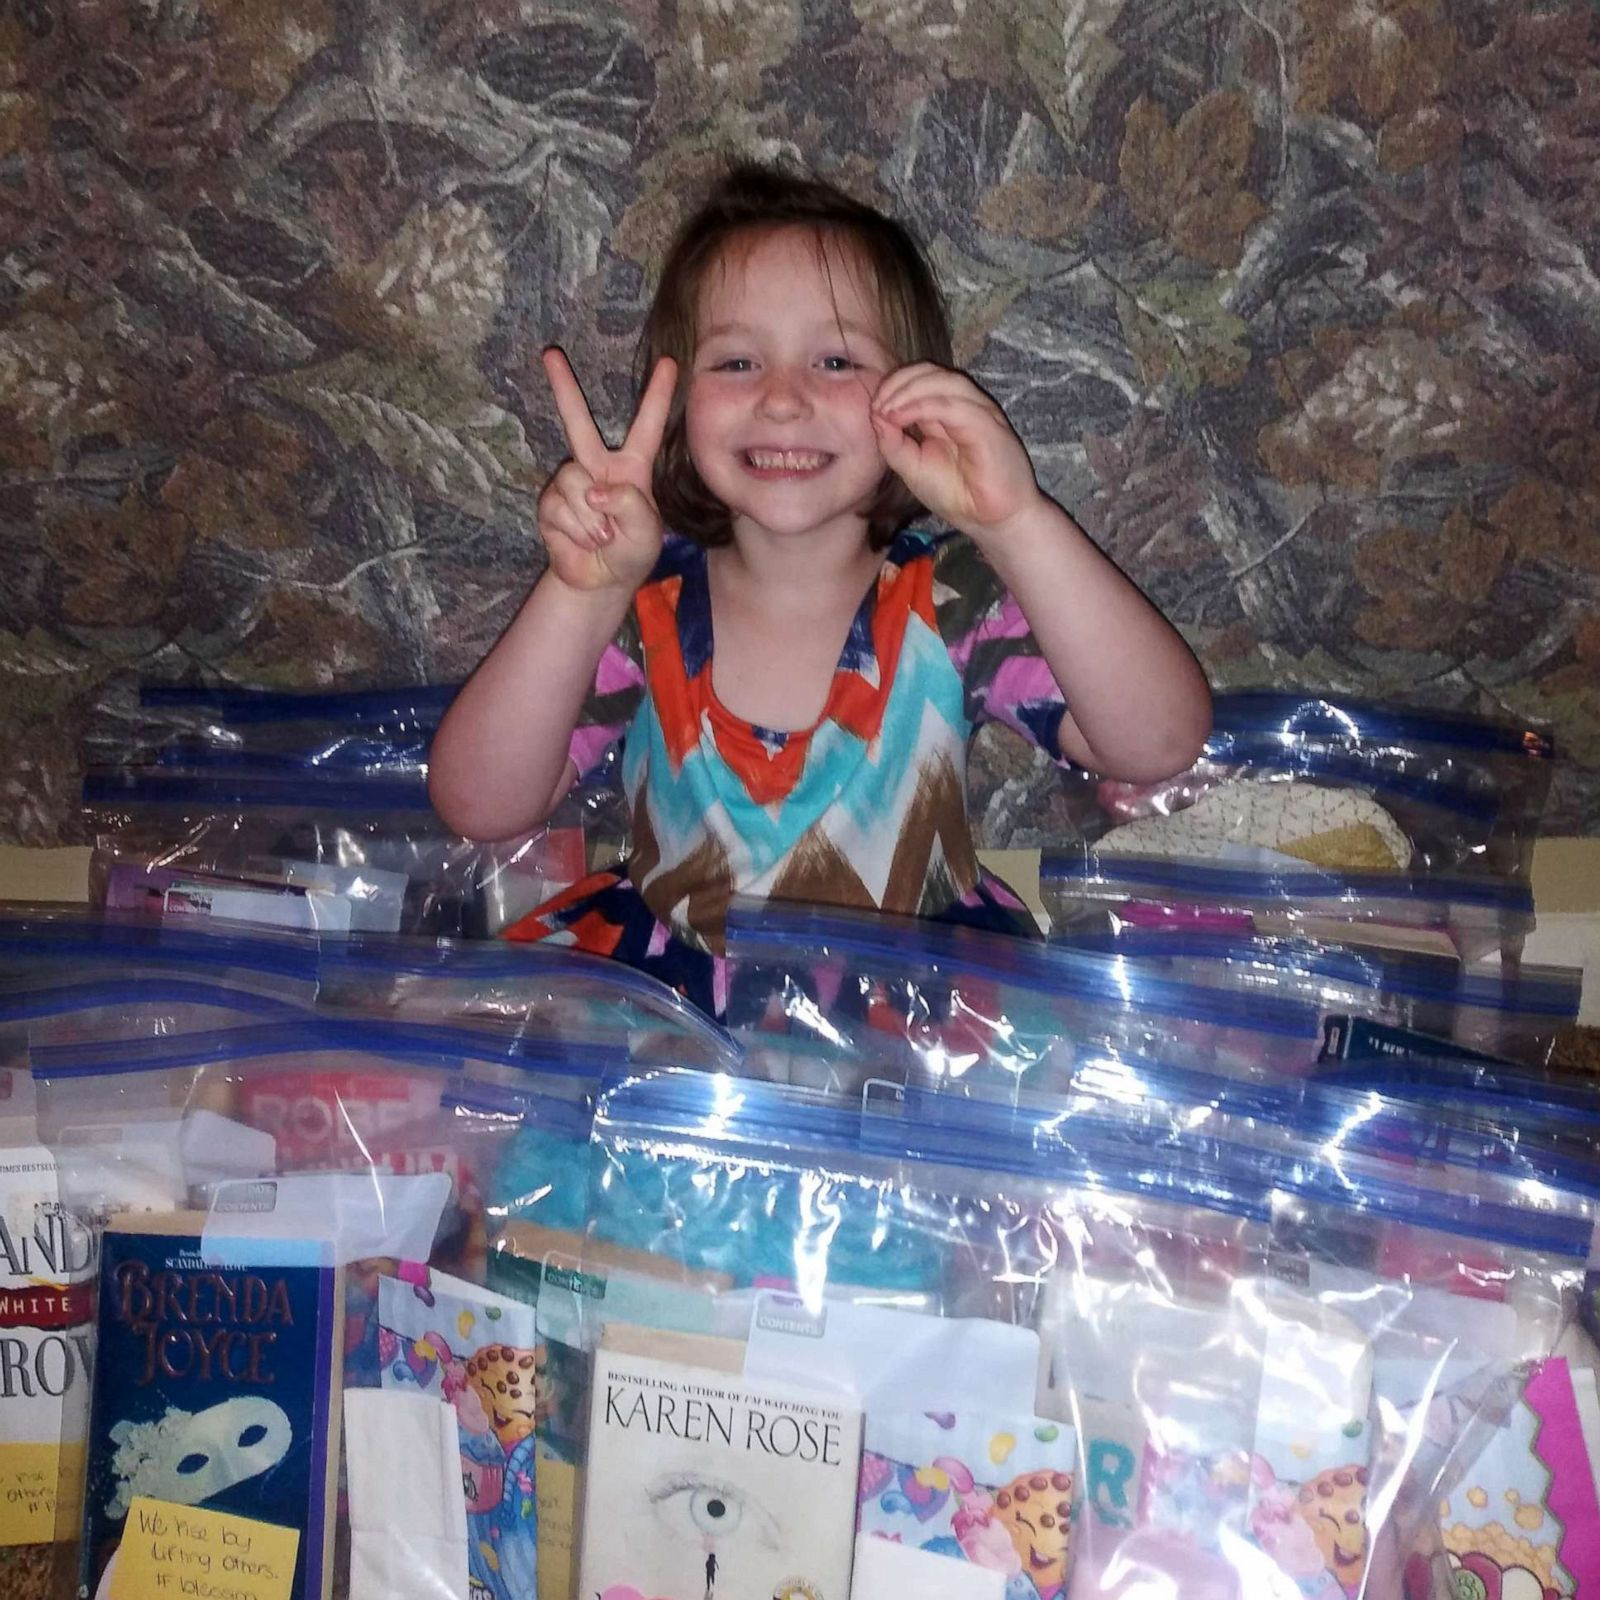 This 5-year-old uses her allowance money to make 'blessing bags' for